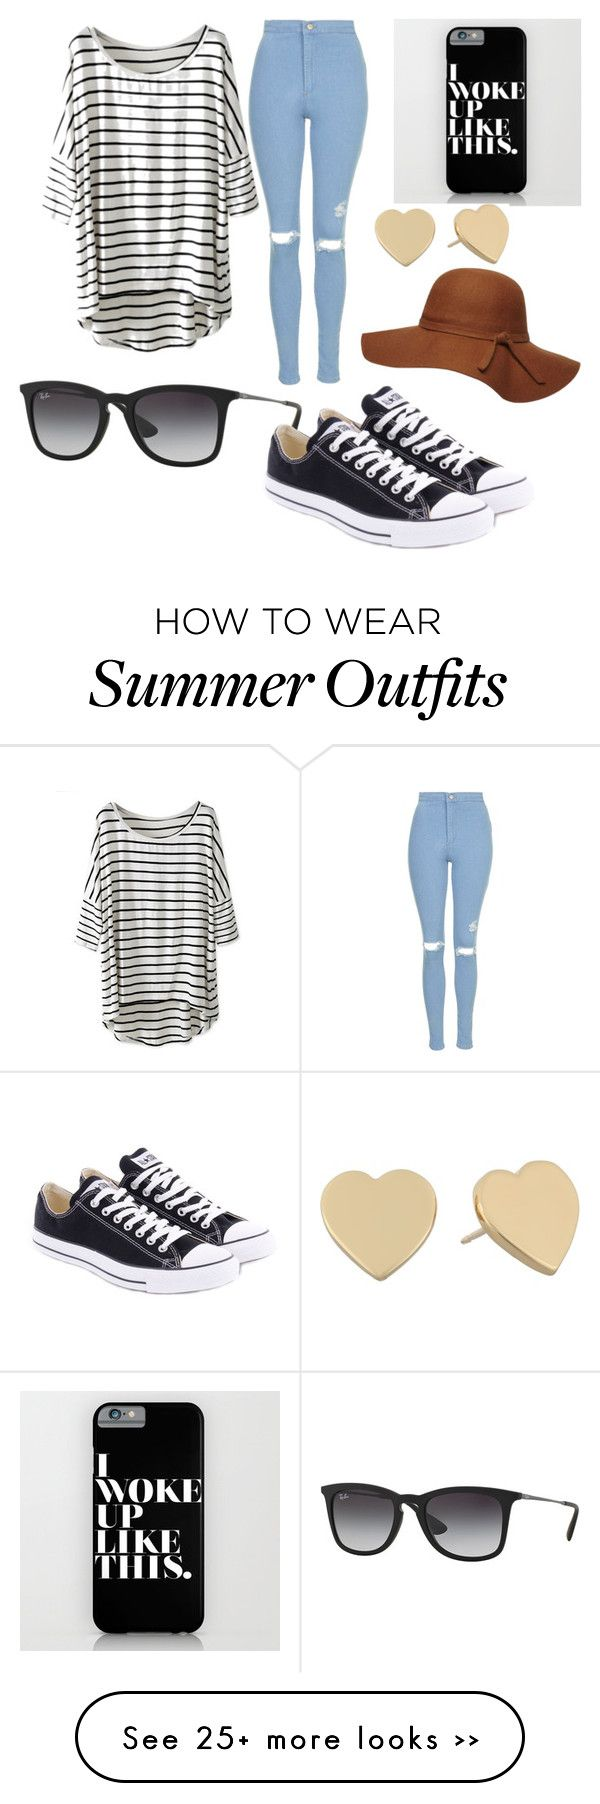 """Summer Outfit for Summer or Fall"" by acmalta on Polyvore"